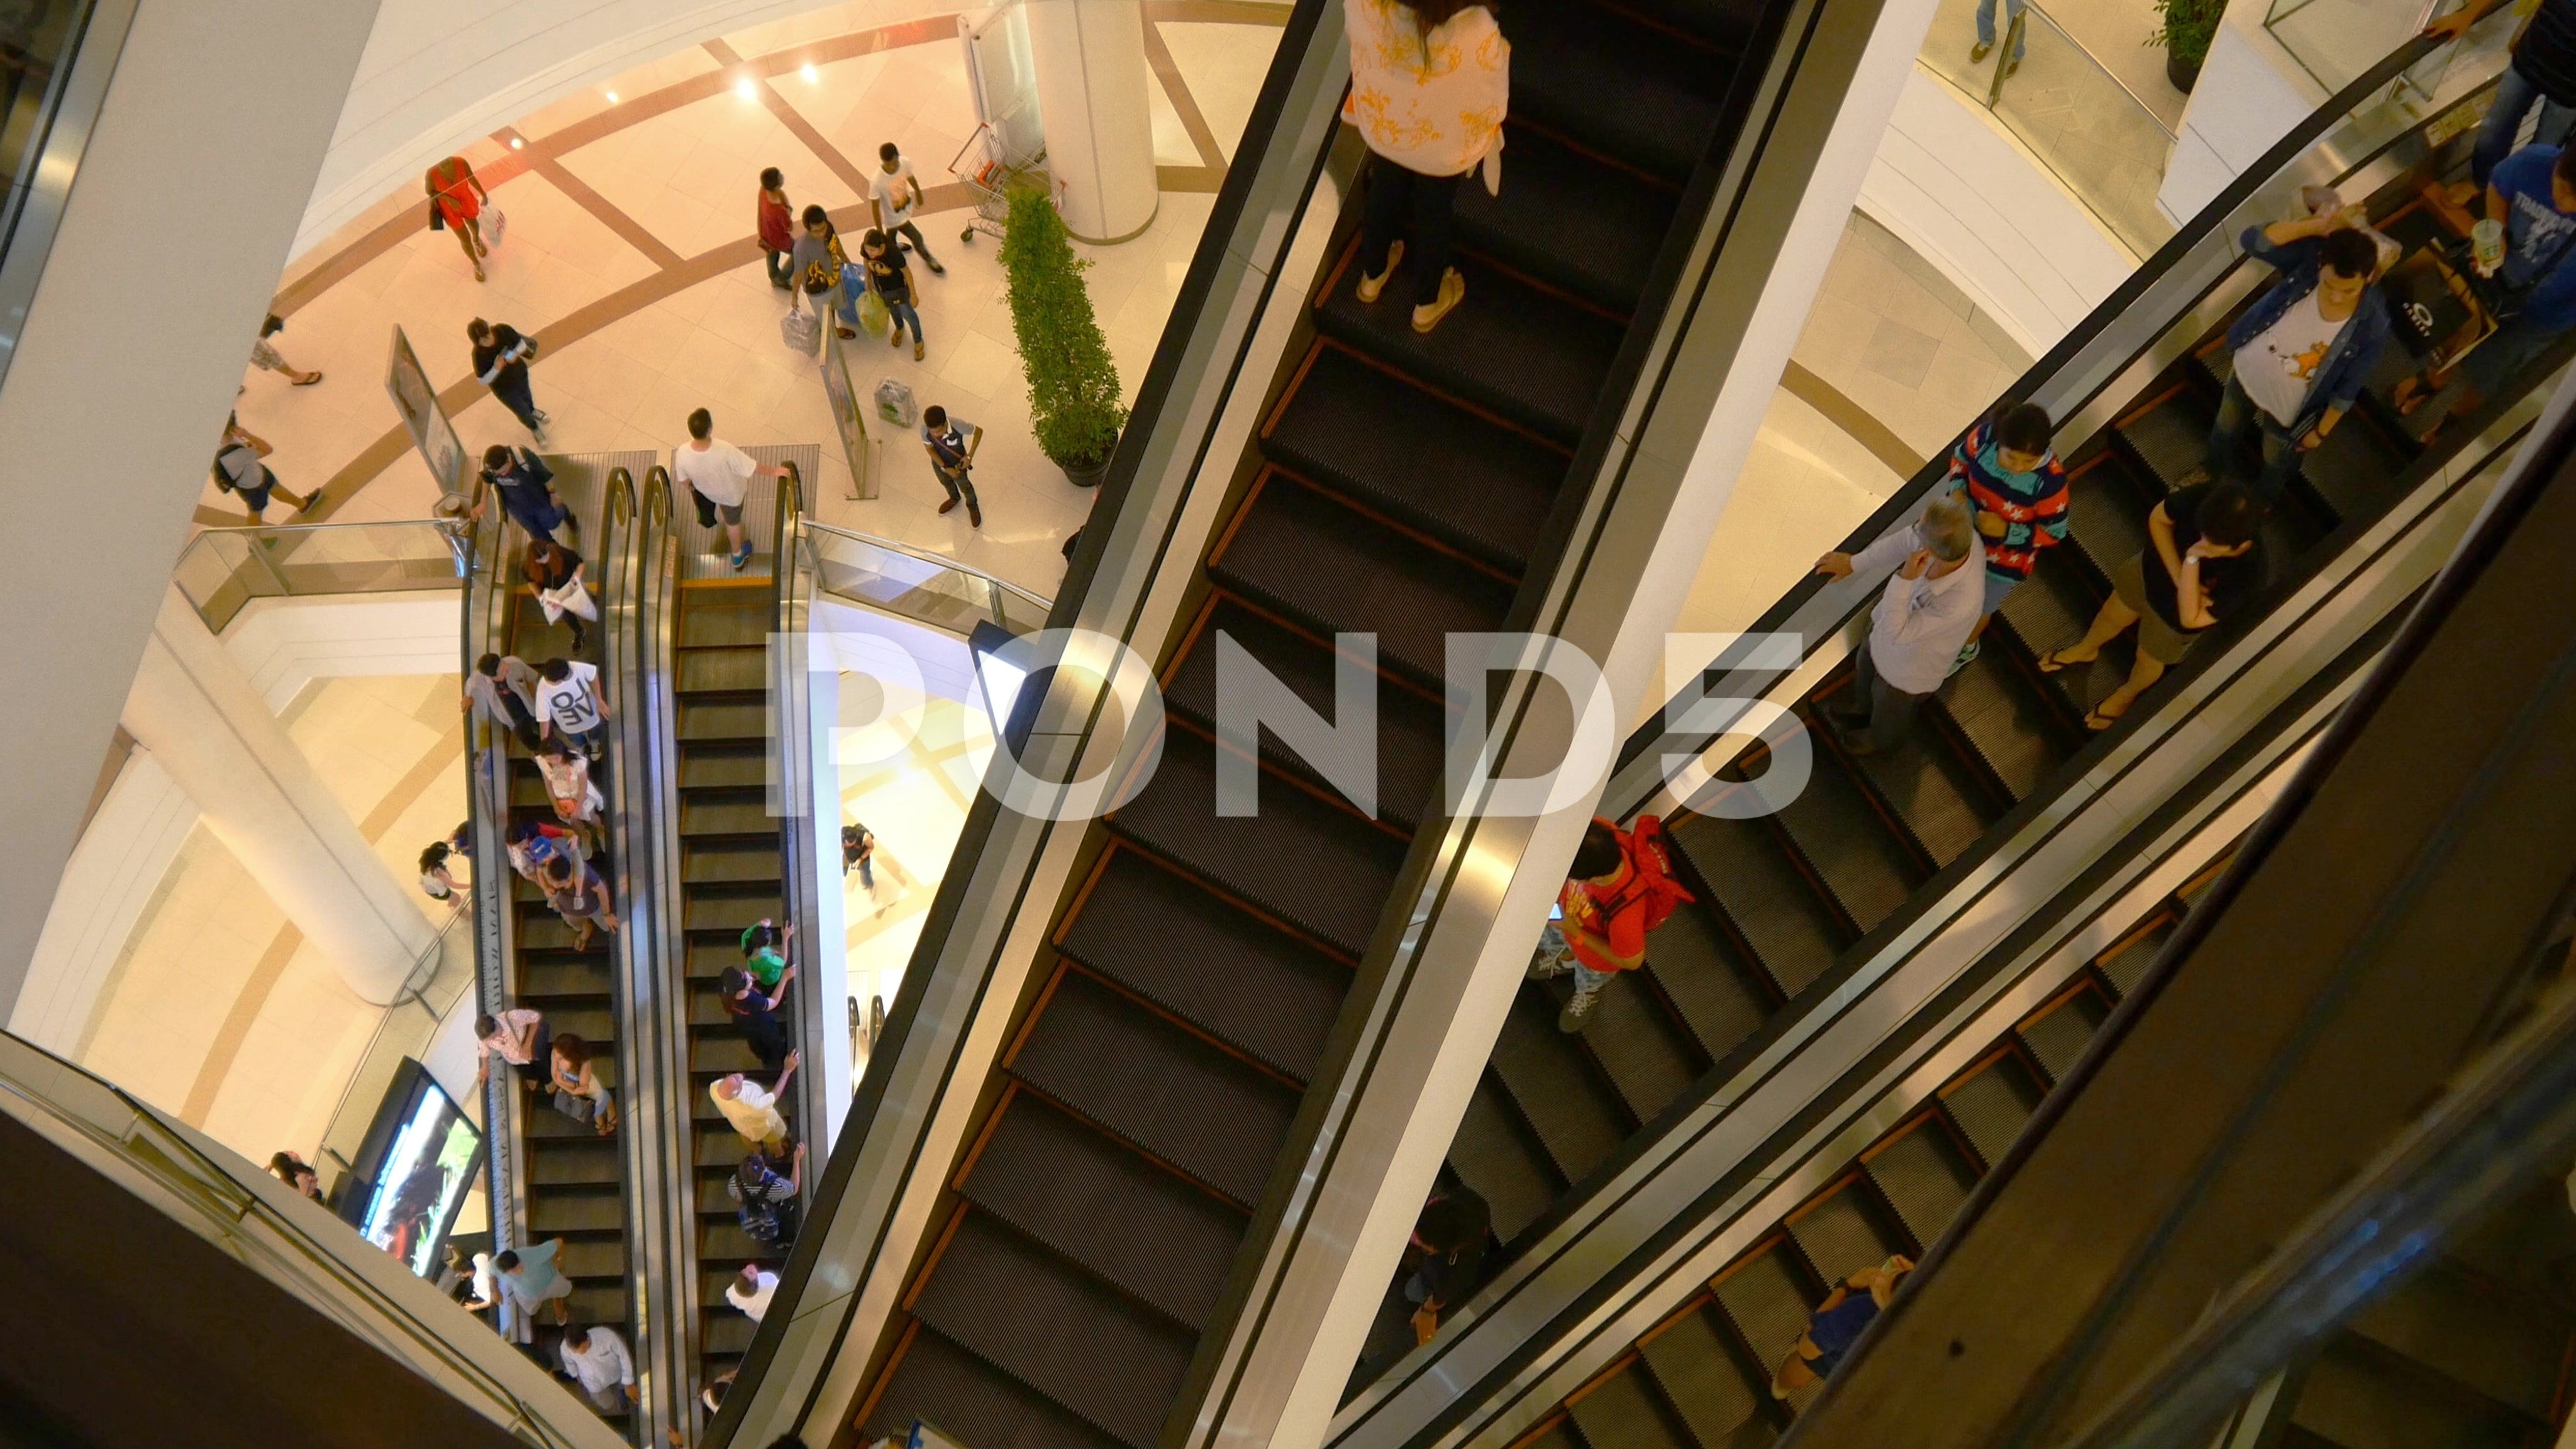 Escalator 4k Shopping Mall Crowd Of People Buy Shop Center Centre Sales Shops Stock Footage Crowd People Buy Escalator Escalator Buy Shop Shopping Mall